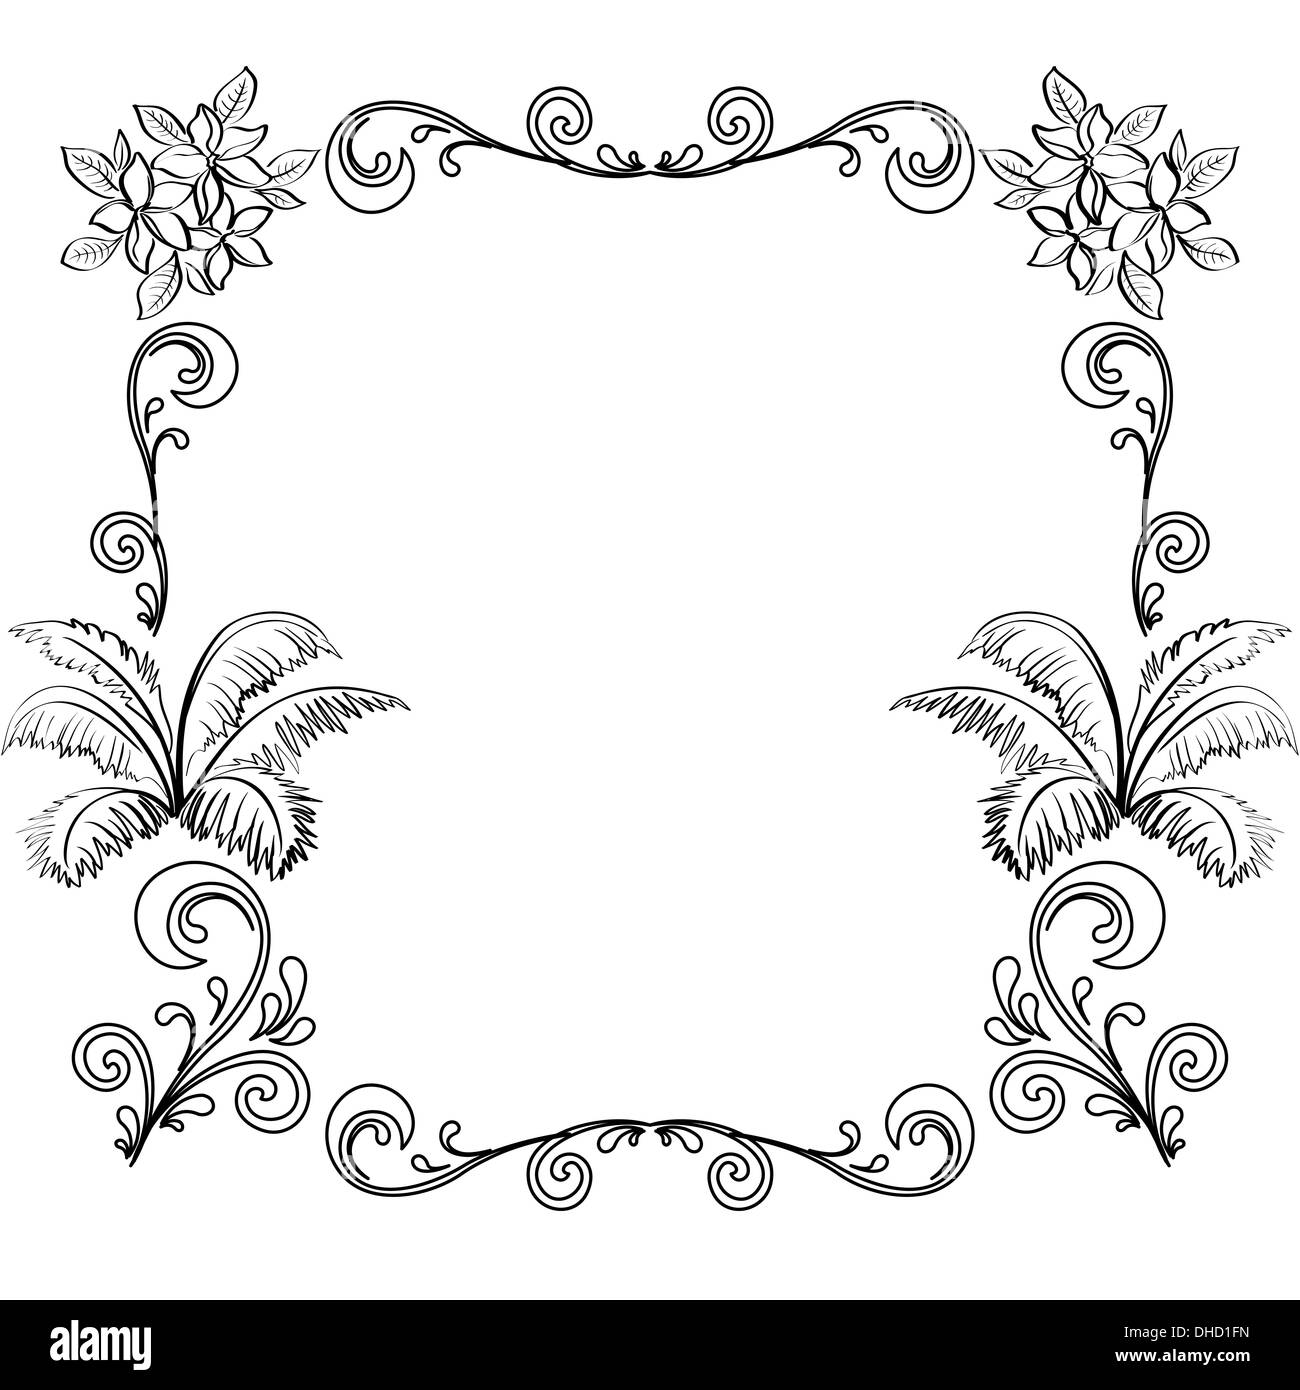 Abstract Floral Background Outline Stock Photo 62366857